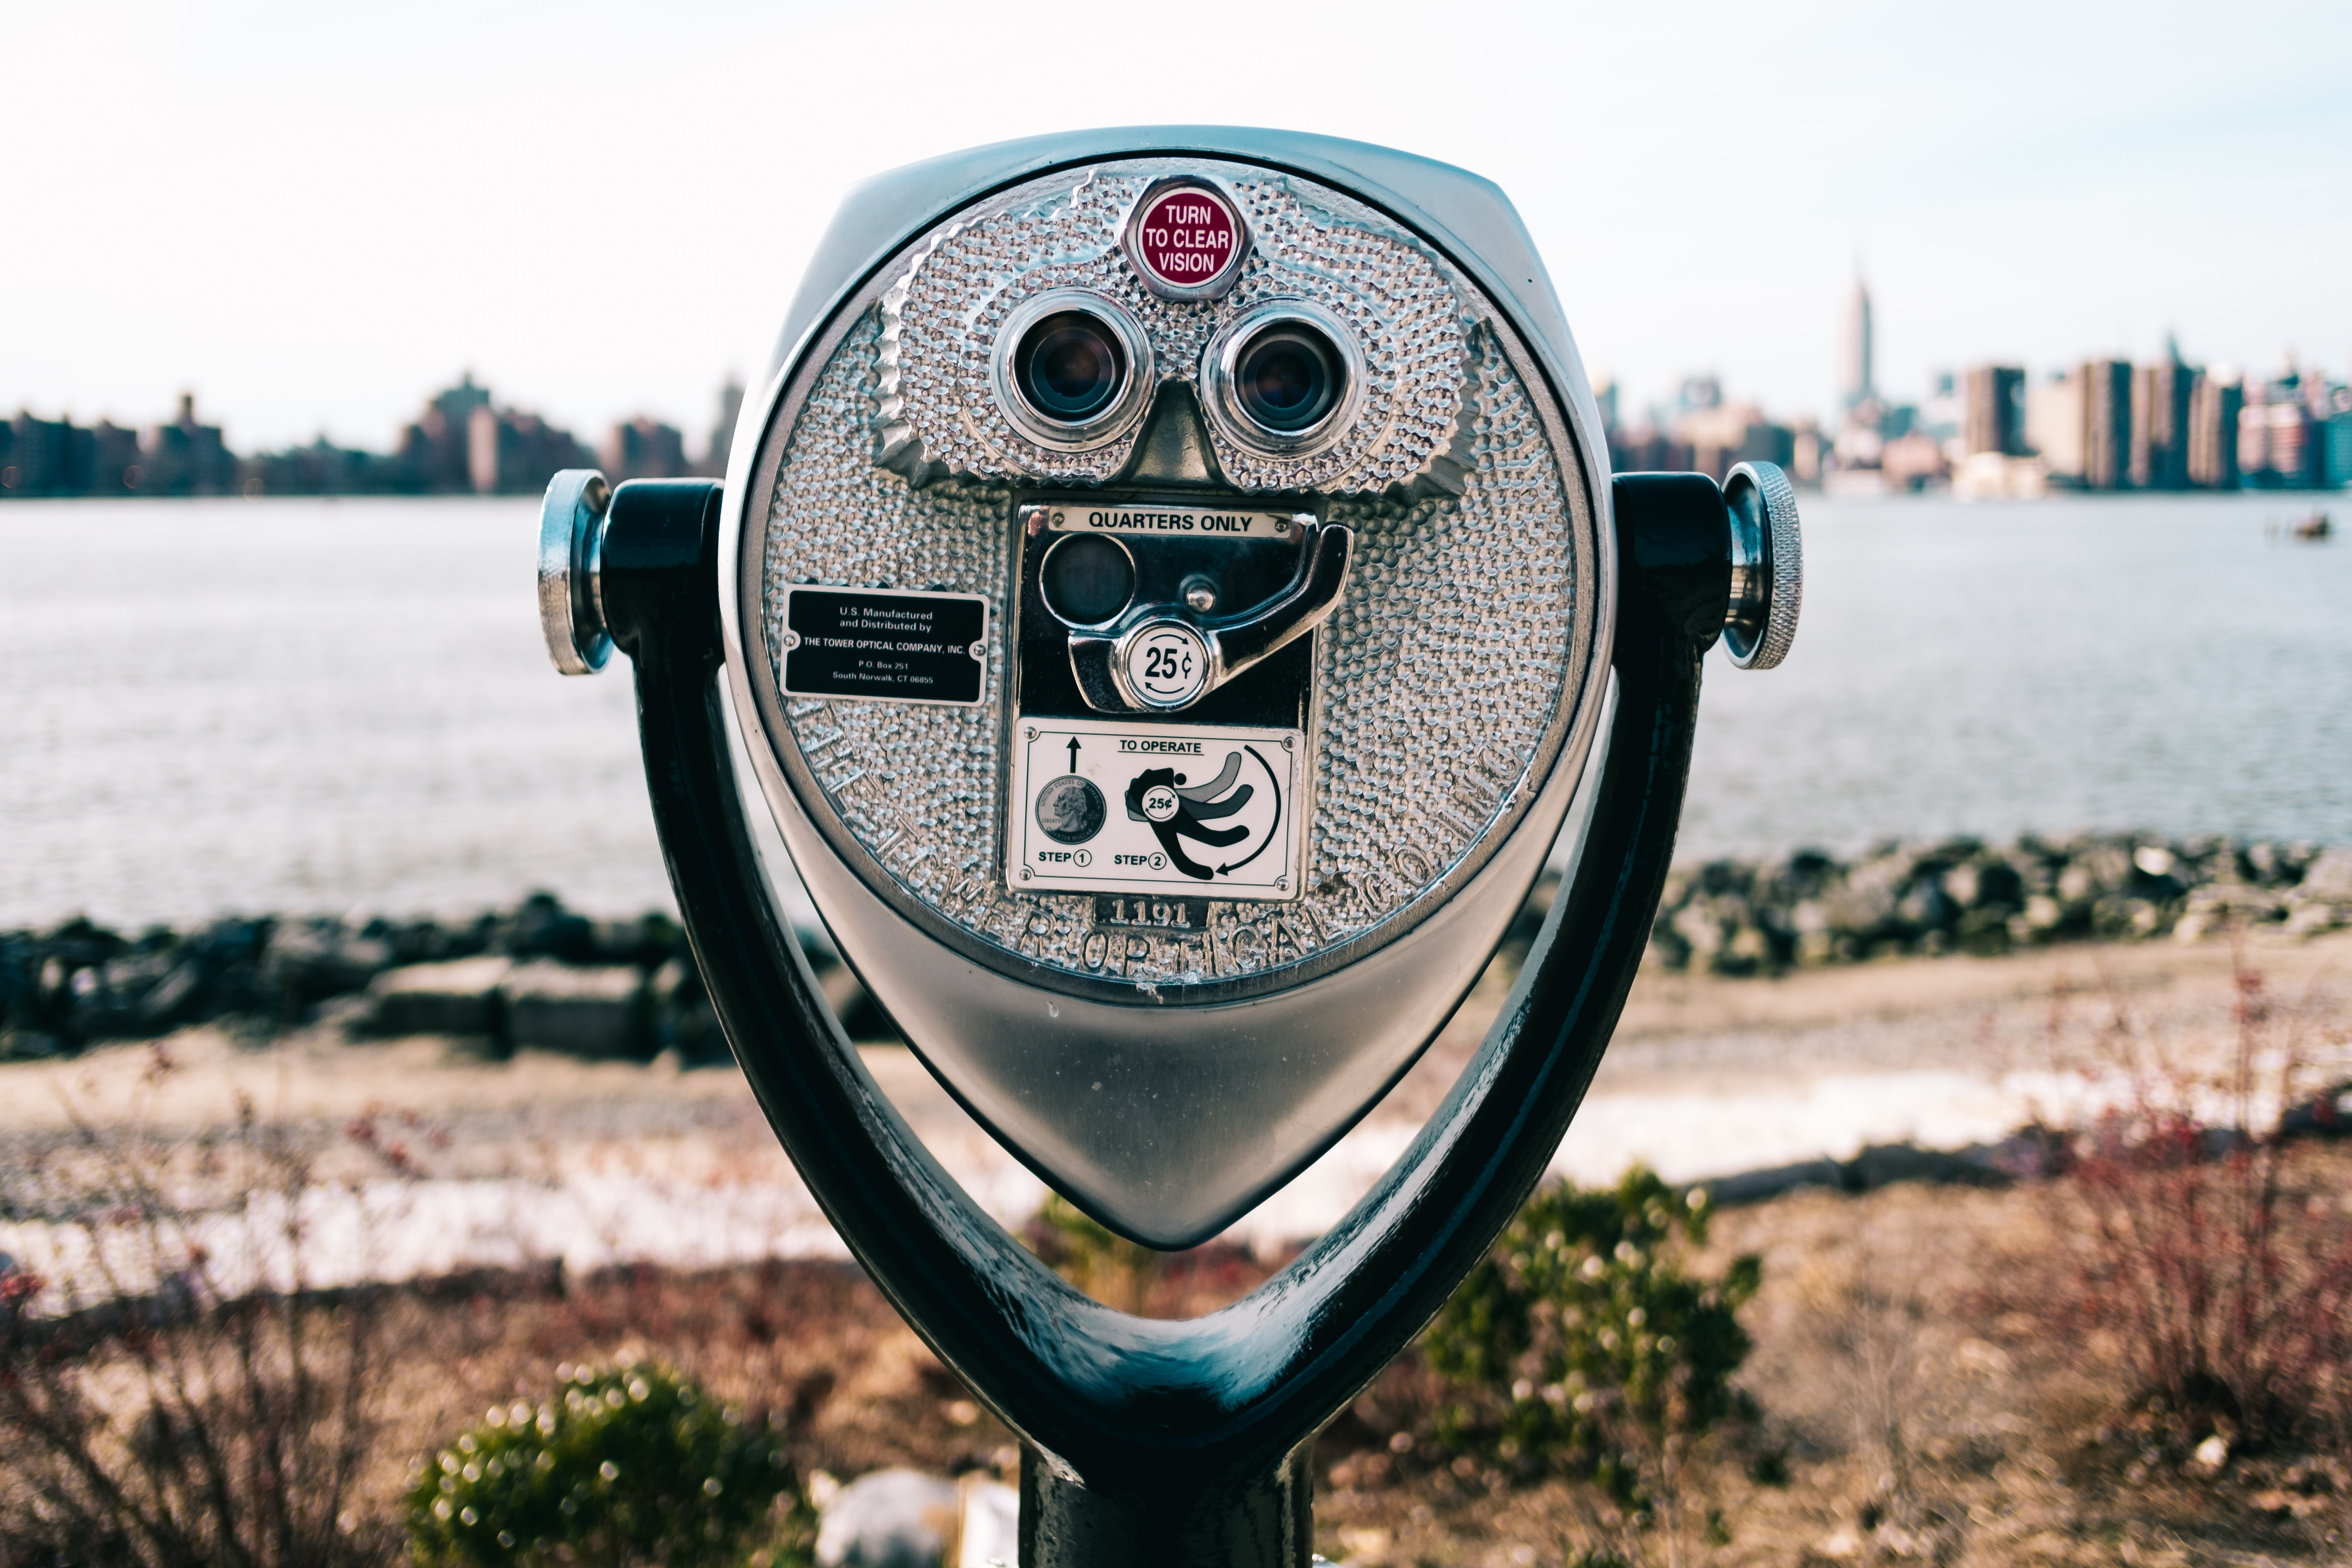 gray and black coin operated binoculars pointing to city